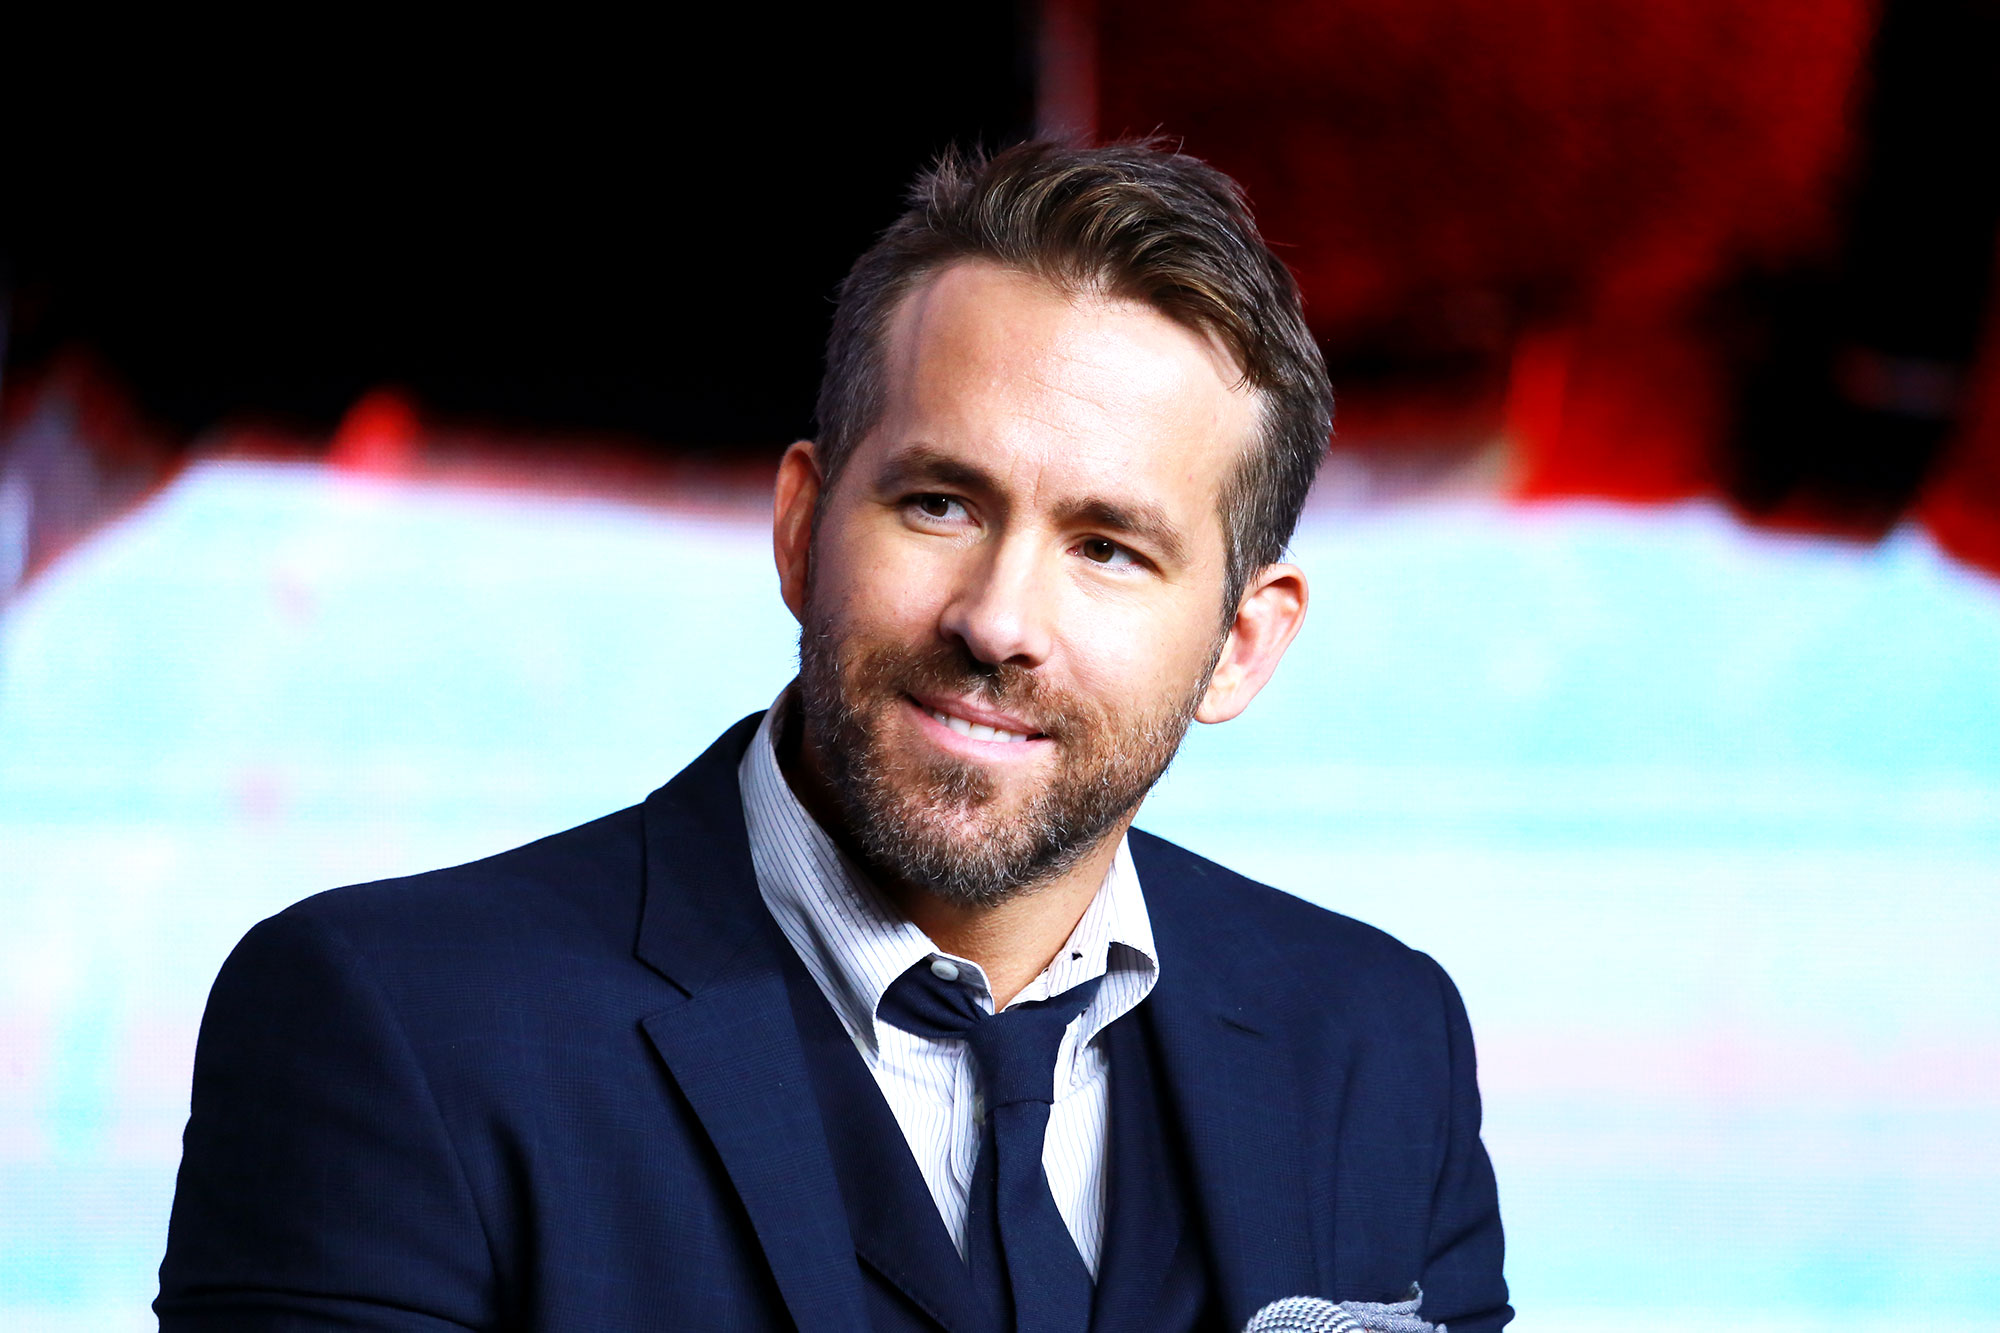 Ryan Reynolds - Canadian-American actor Ryan Reynolds attends the premiere of 'Deadpool 2' on January 20, 2019 in Beijing, China.